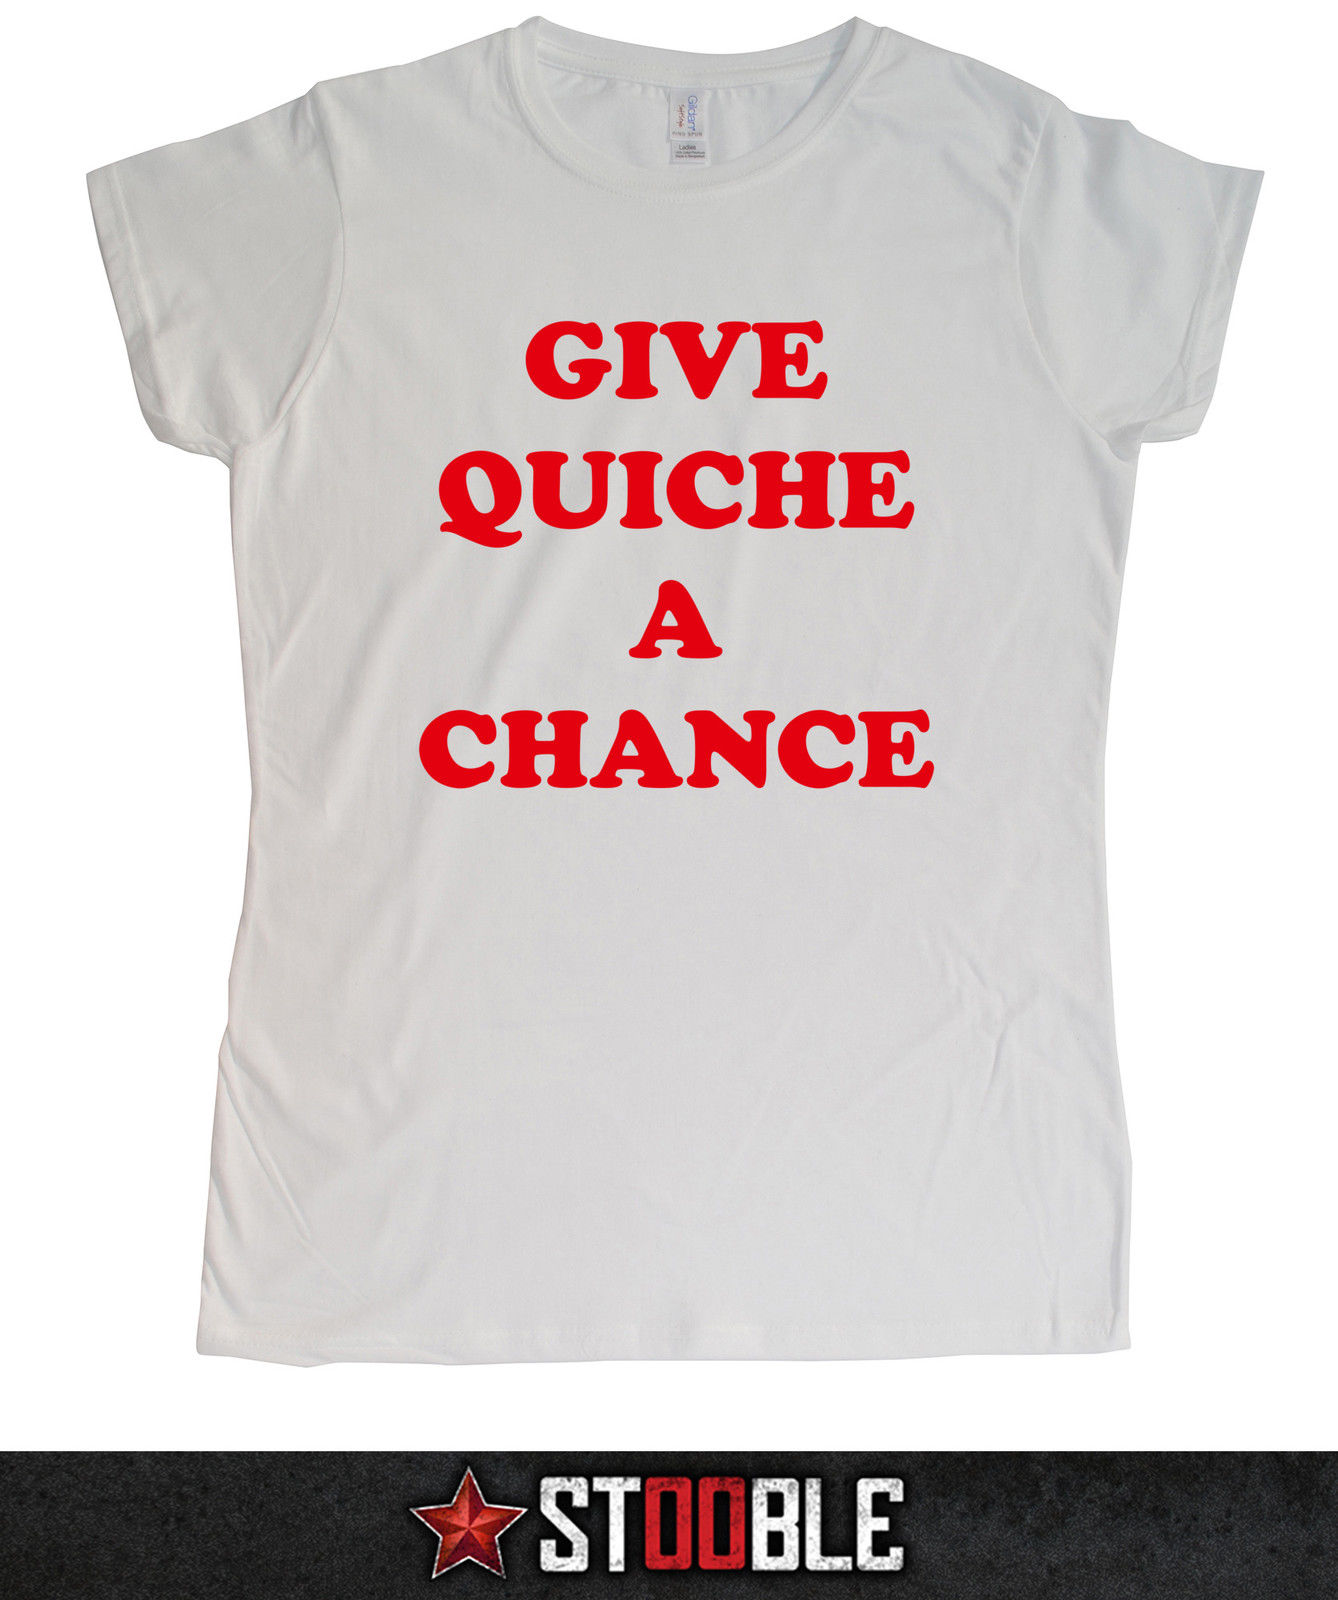 Give Quiche a Chance Ladies T-Shirt - Direct from Stockist New T Shirts Funny Tops Tee Unisex Black Style